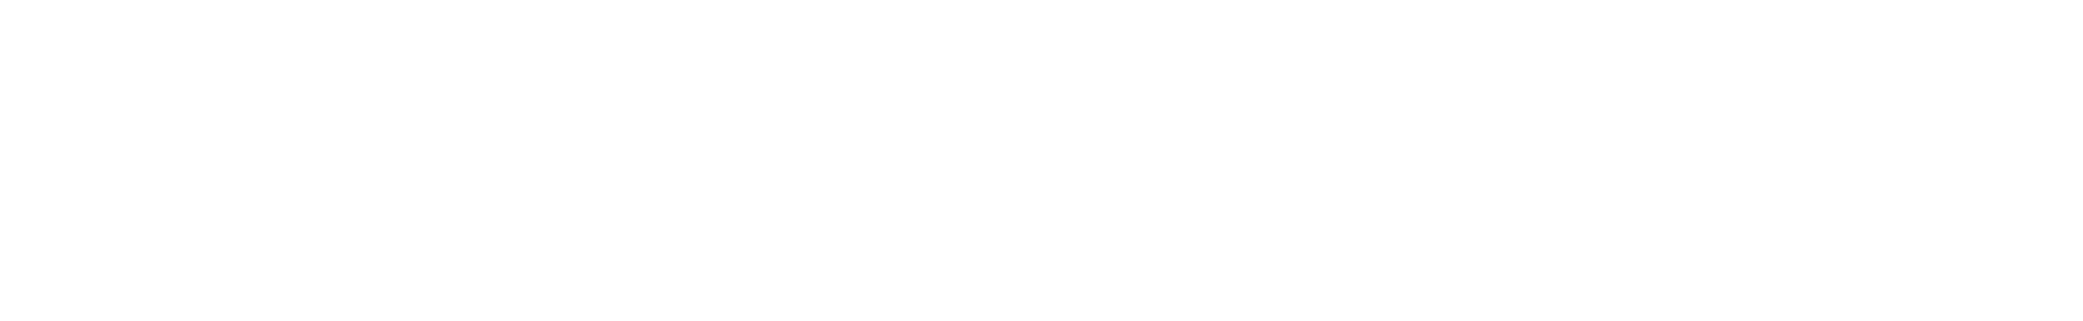 Yeshiva University Libraries Digital Collections